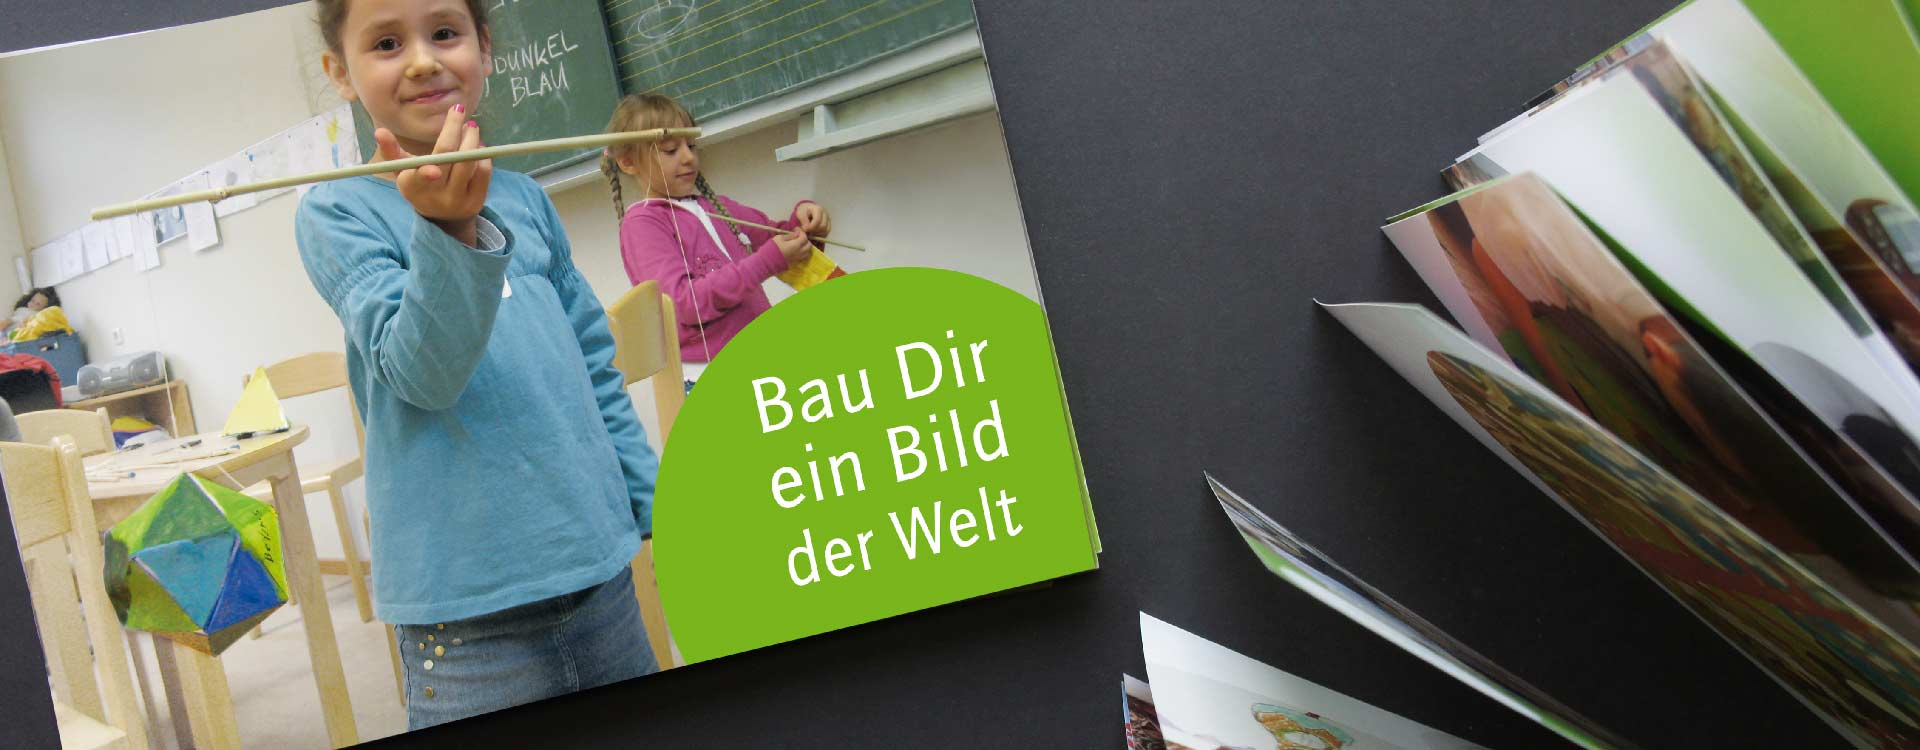 Front cover of the brochure Bau Dir ein Bild der Welt, which documents the workshops of the artist group mazum; Design: Kattrin Richter | Graphic Design Studio